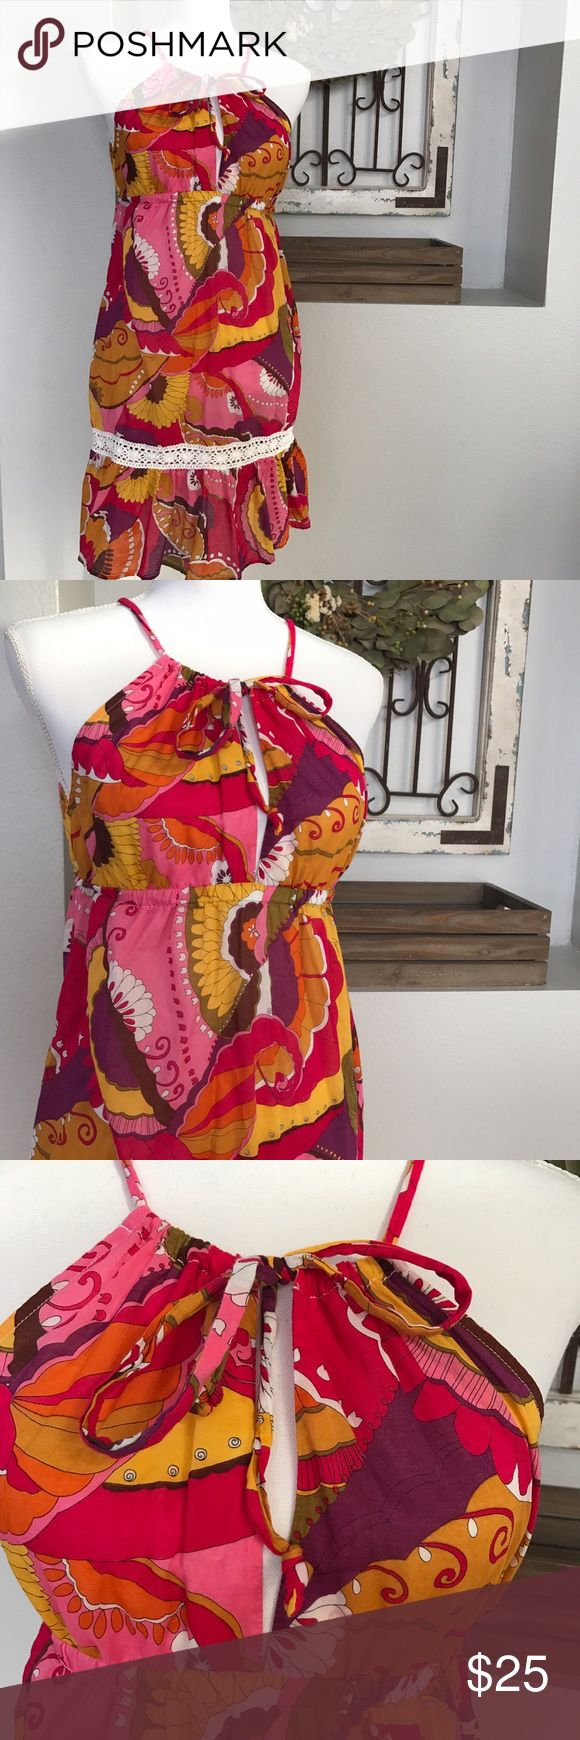 """Trina Turk Spring/ Summer Floral Dress Trina Turk Spring/ Summer Floral Dress. Size large. Armpit to armpit 16"""", total length of dress is 33"""" long. The last picture I held up to my window to show how sheer this dress is. Trina Turk Dresses Midi"""